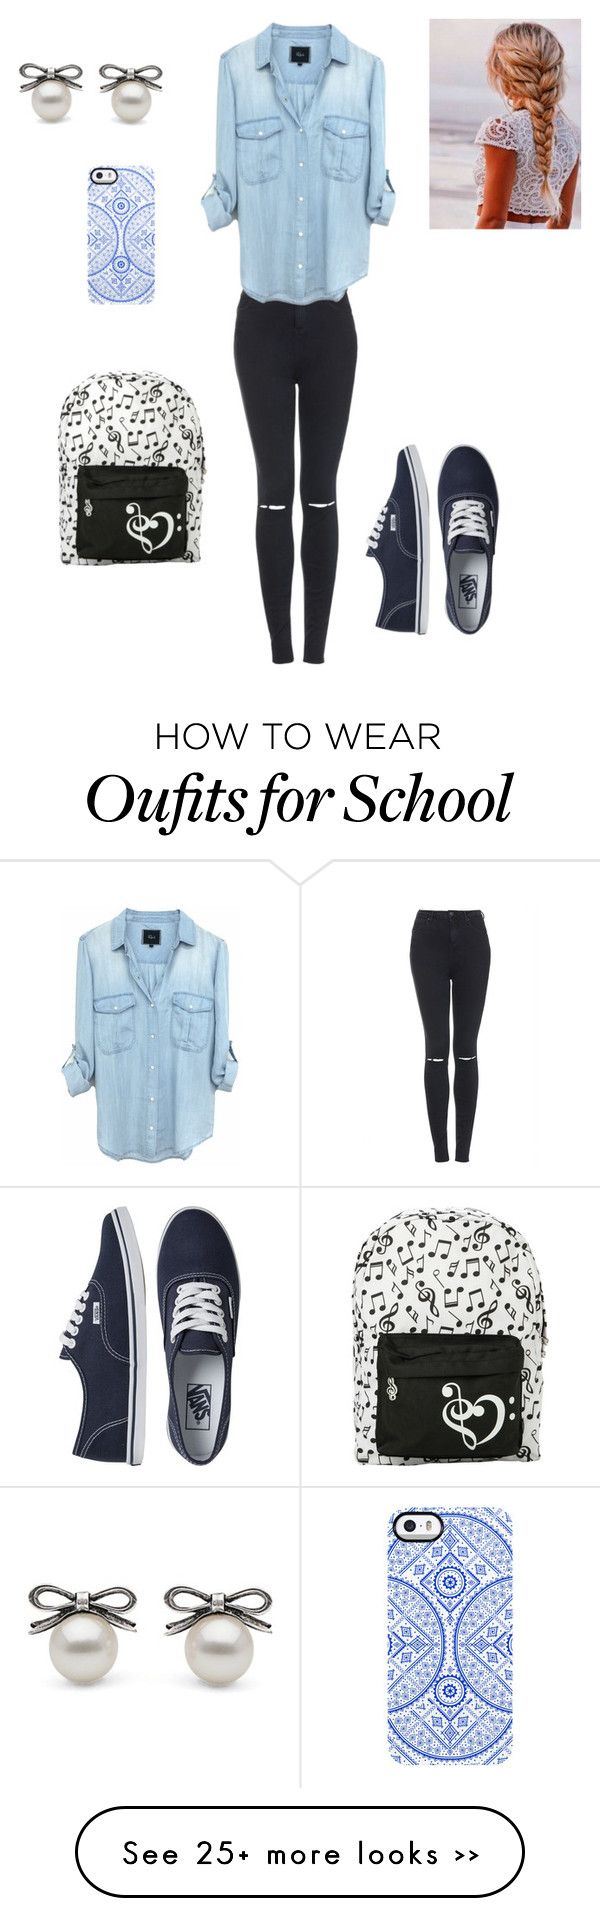 """School"" by macsuzbax on Polyvore"